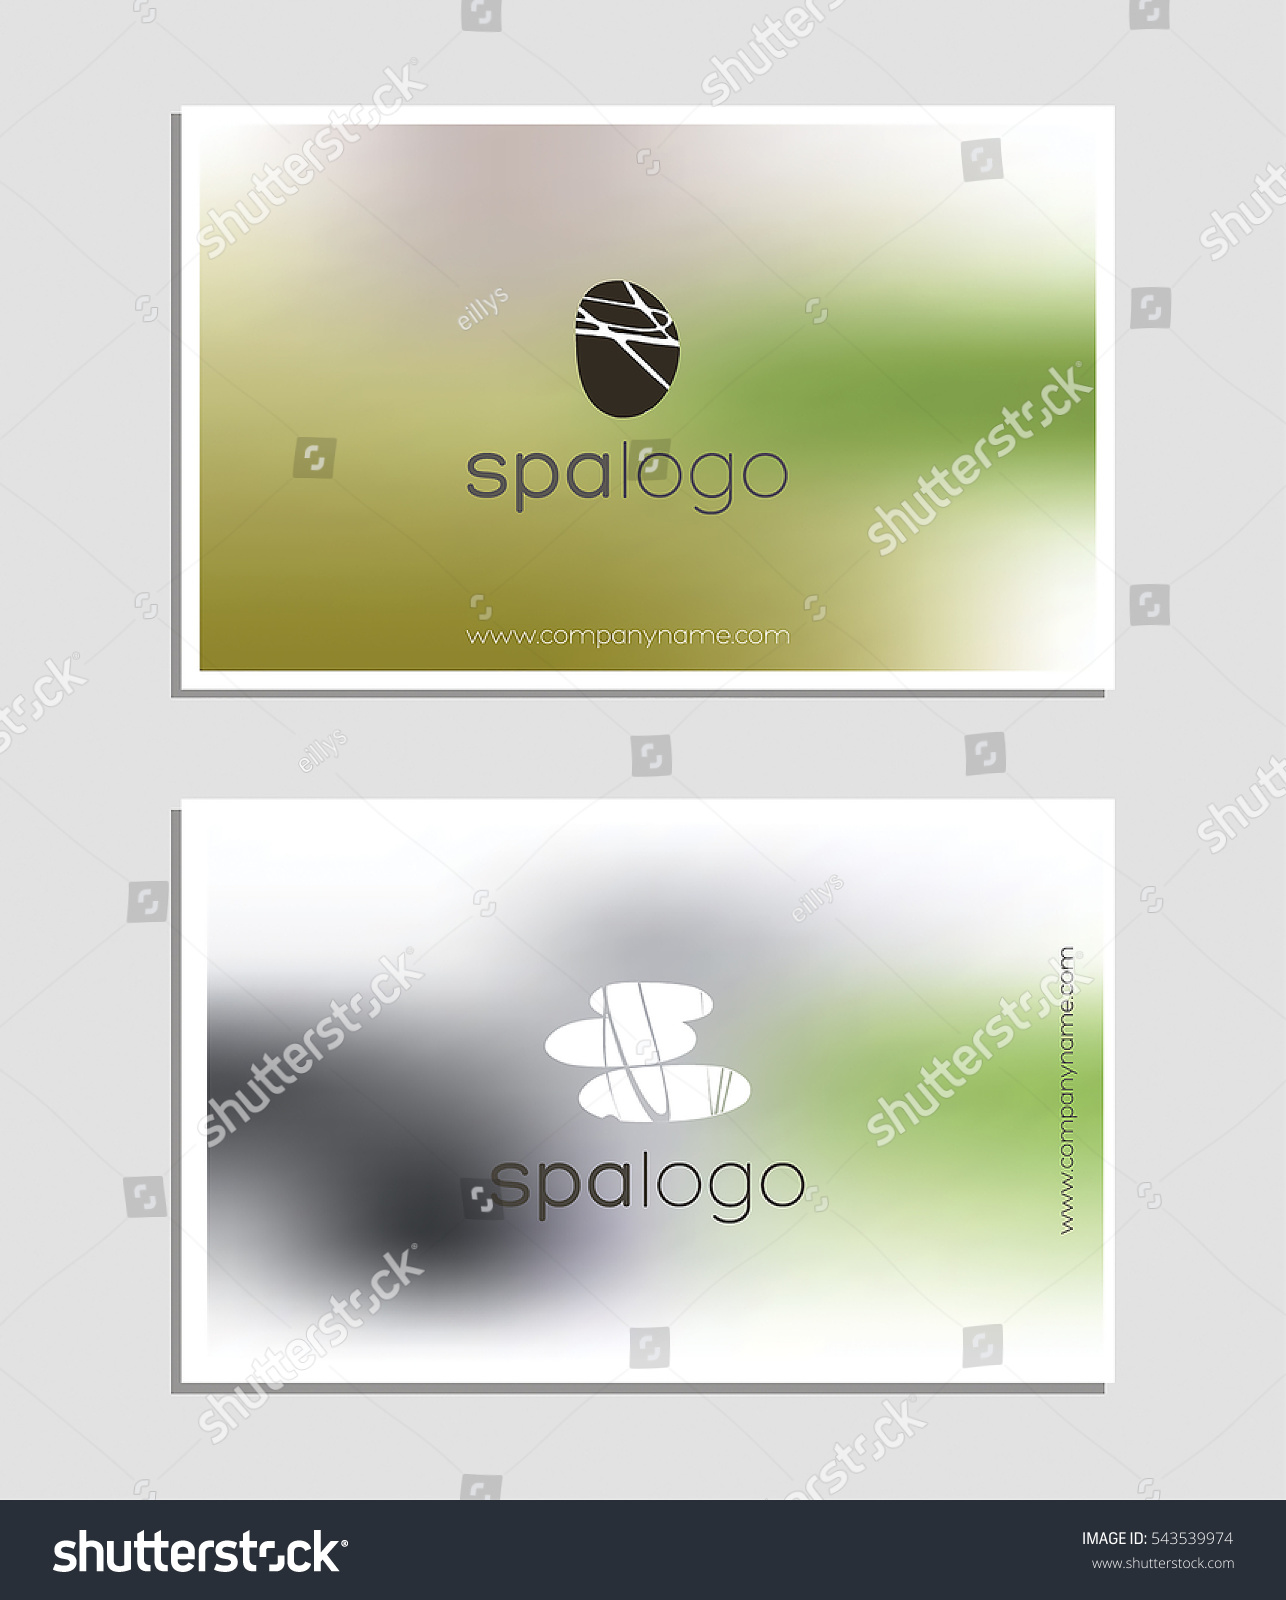 Free construction business cards templates images templates sample construction business cards image collections free 100 construction business cards templates free awesome construction business magicingreecefo Gallery